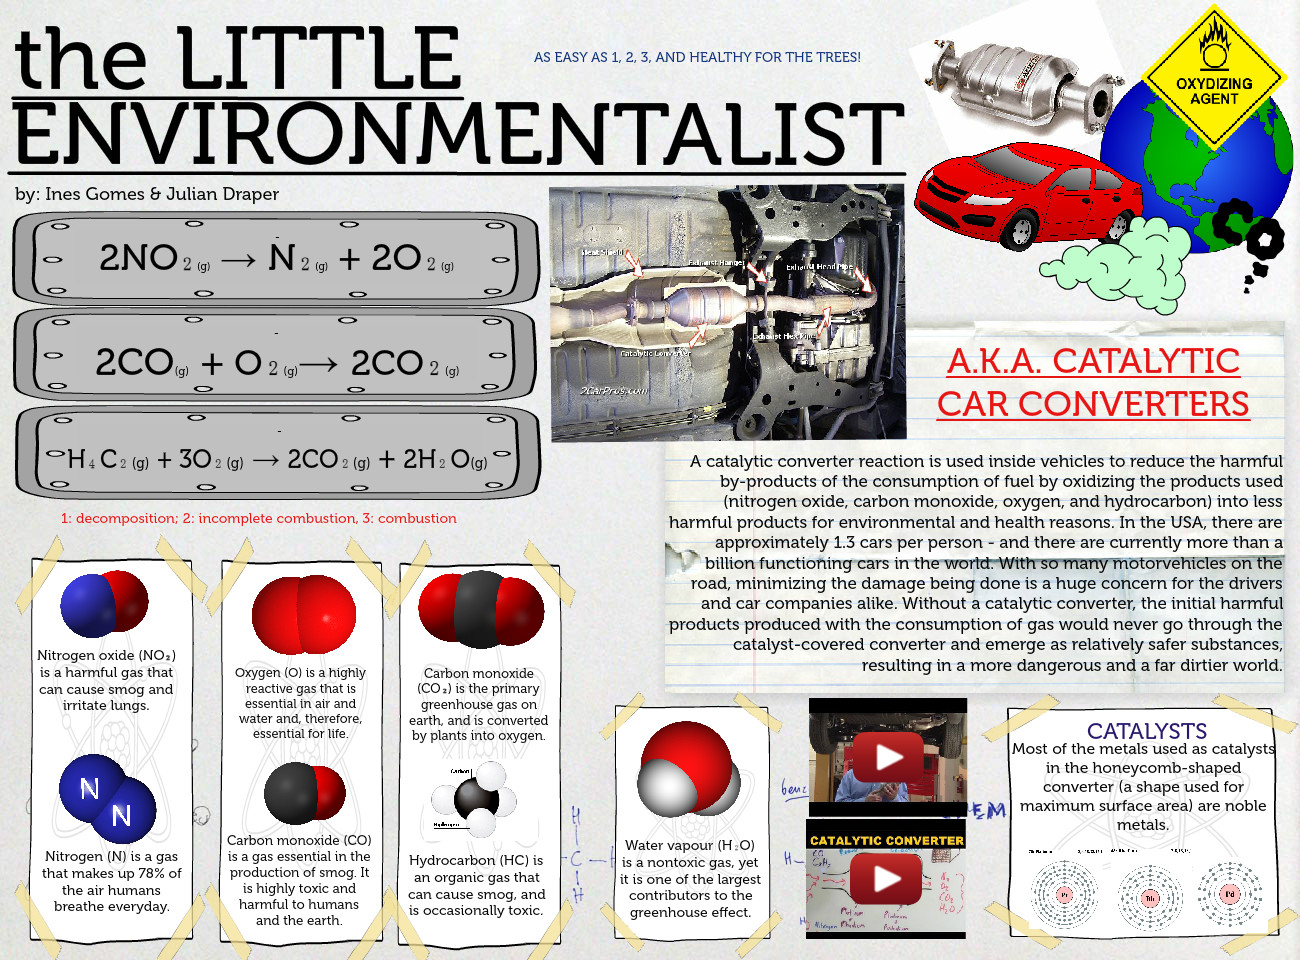 The Little Environmentalistic